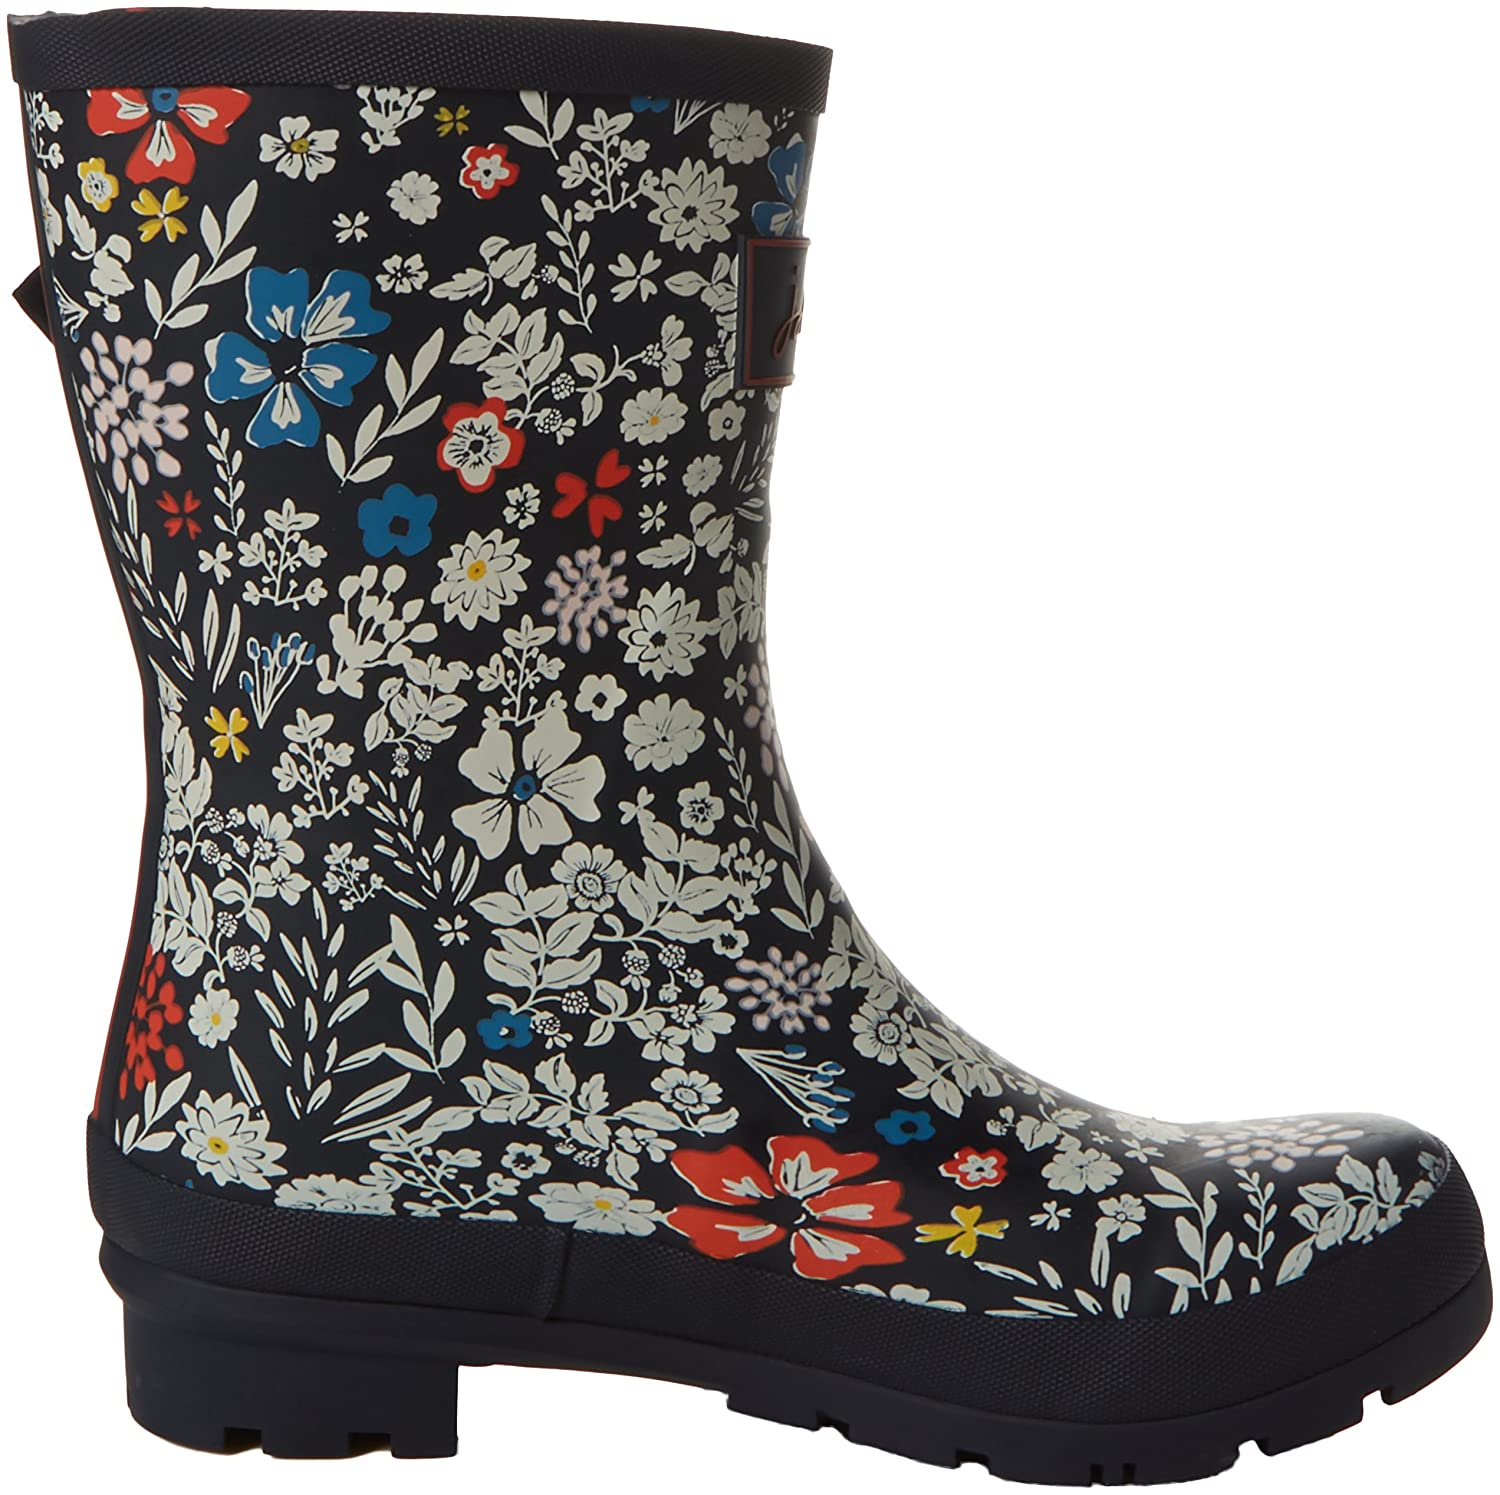 Joules Women's Molly Welly Rain US|French Boot B06XGPBPM7 5 B(M) US|French Rain Navy Ria Ditsy 4374a9